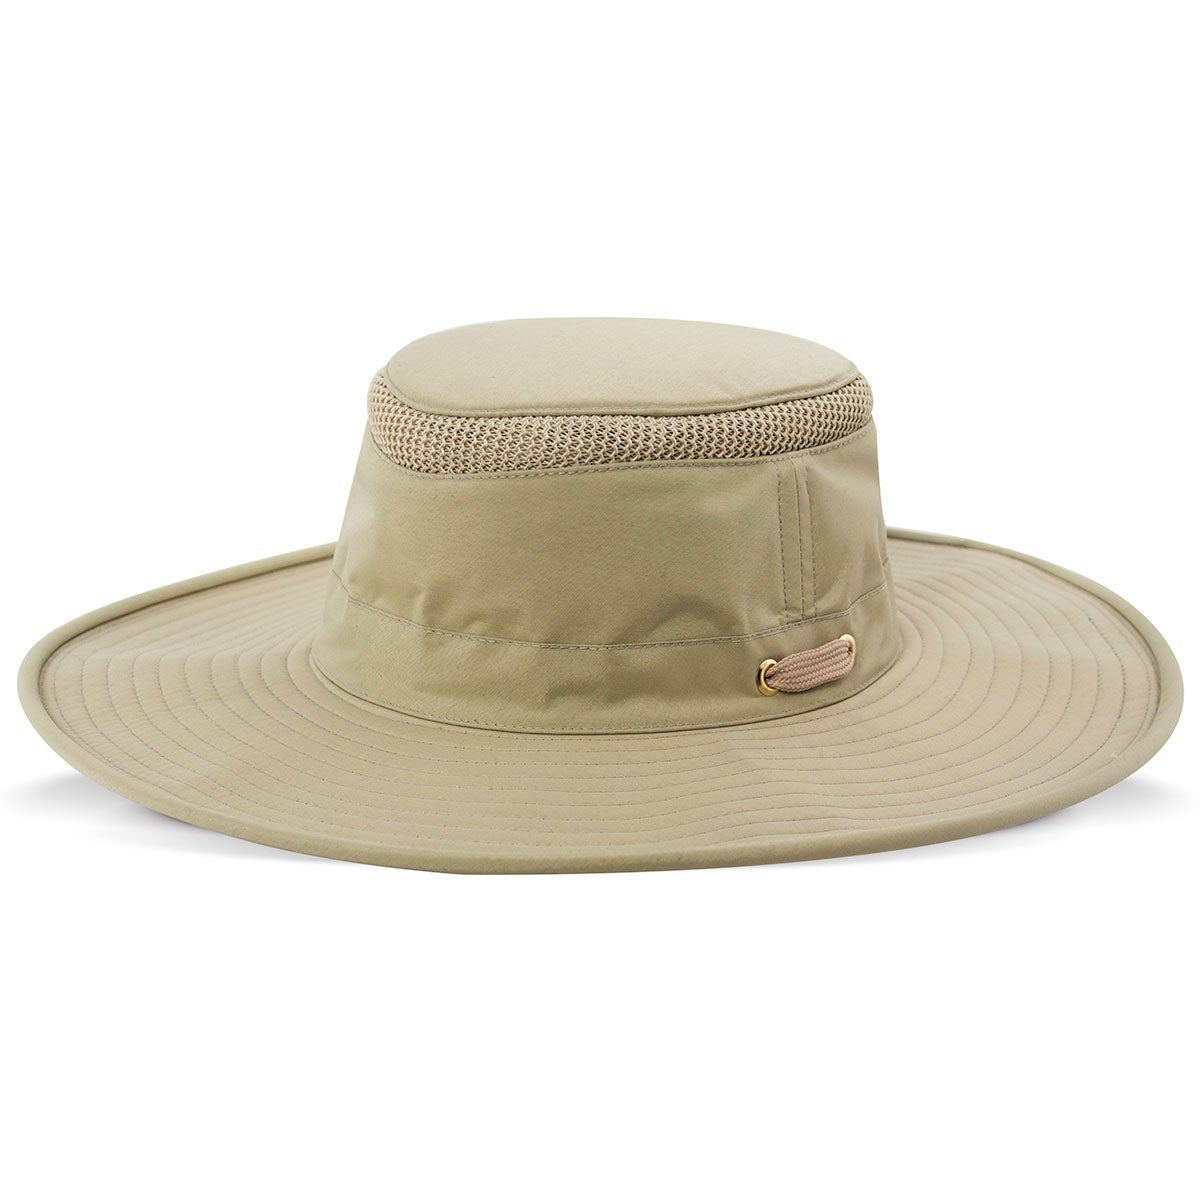 Tilley Airflo Lightweight Vented Wide Brim Outback in Khaki